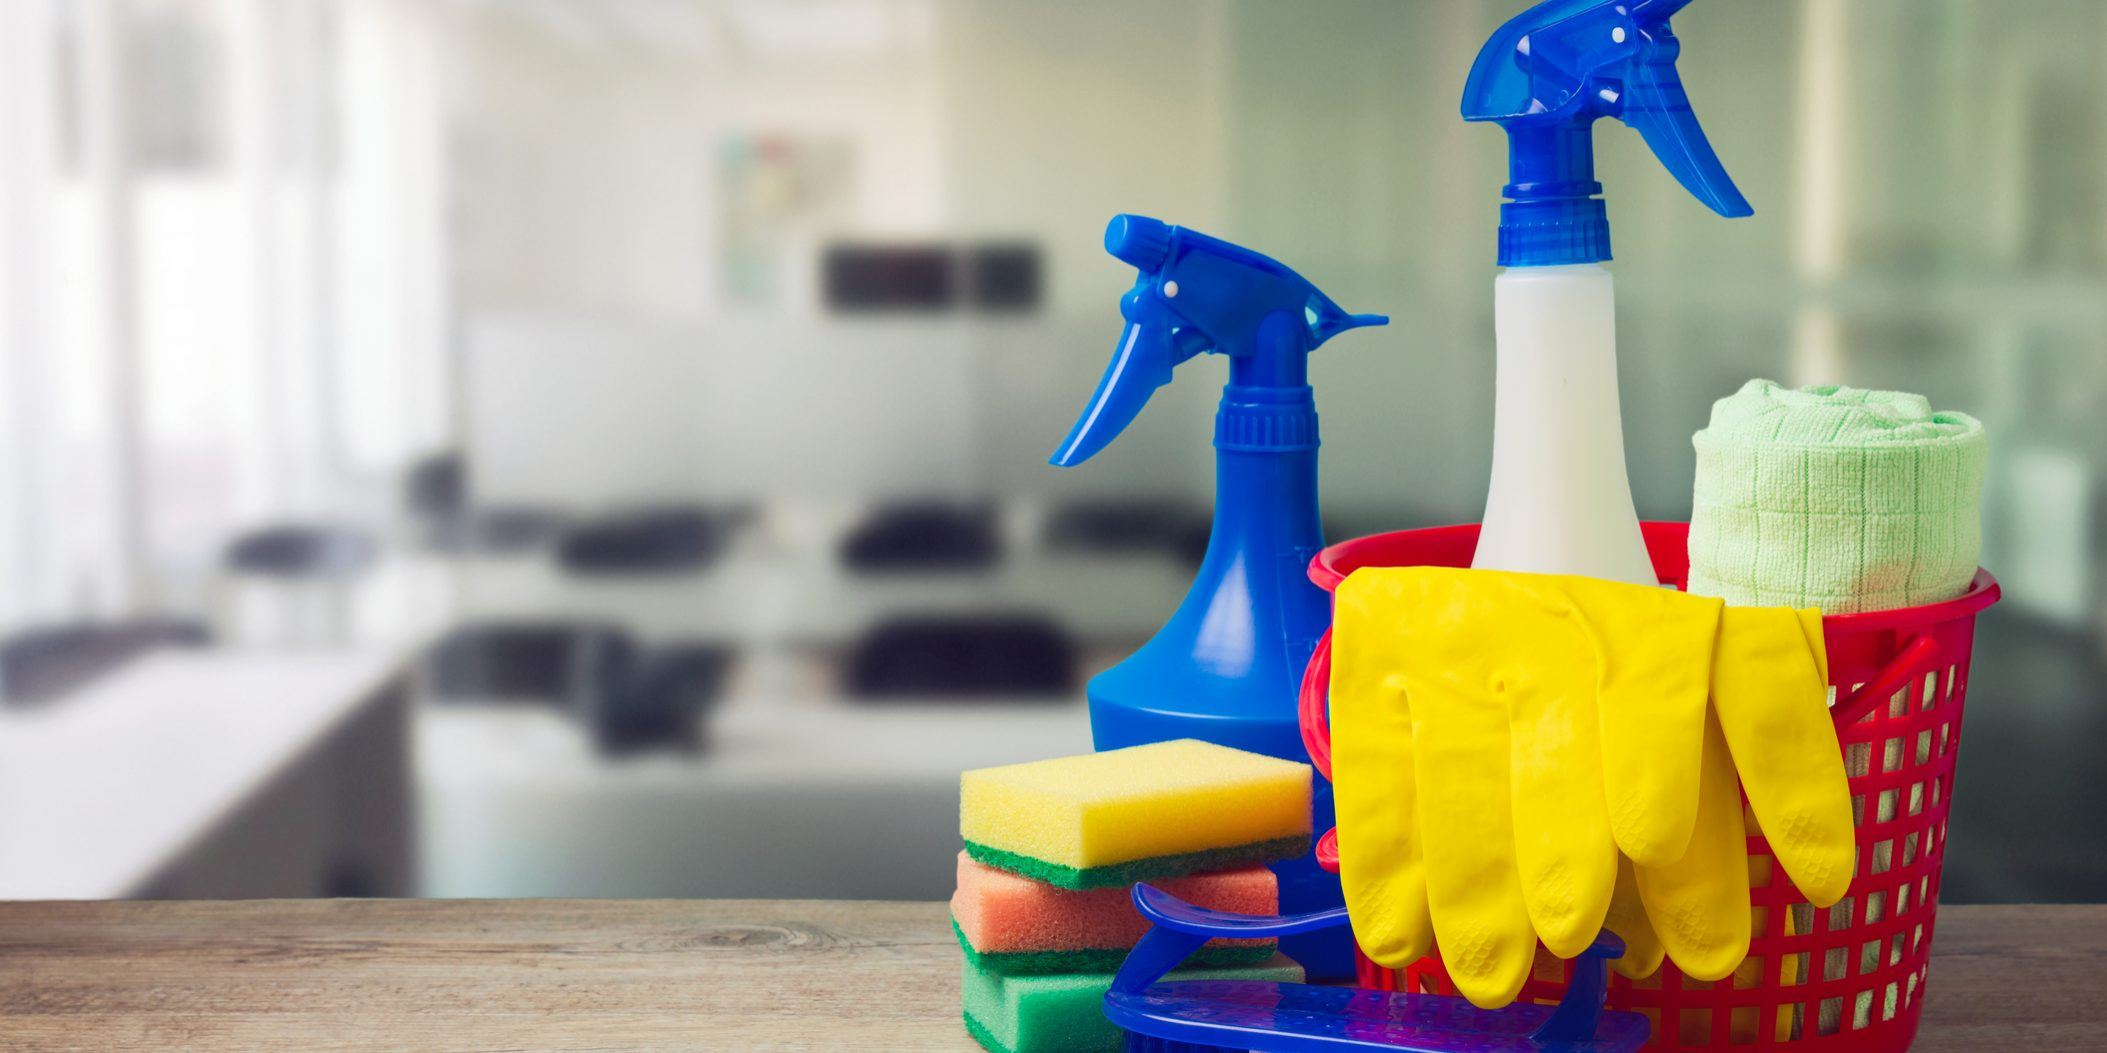 Cleaning Equipment rubber gloves and spray